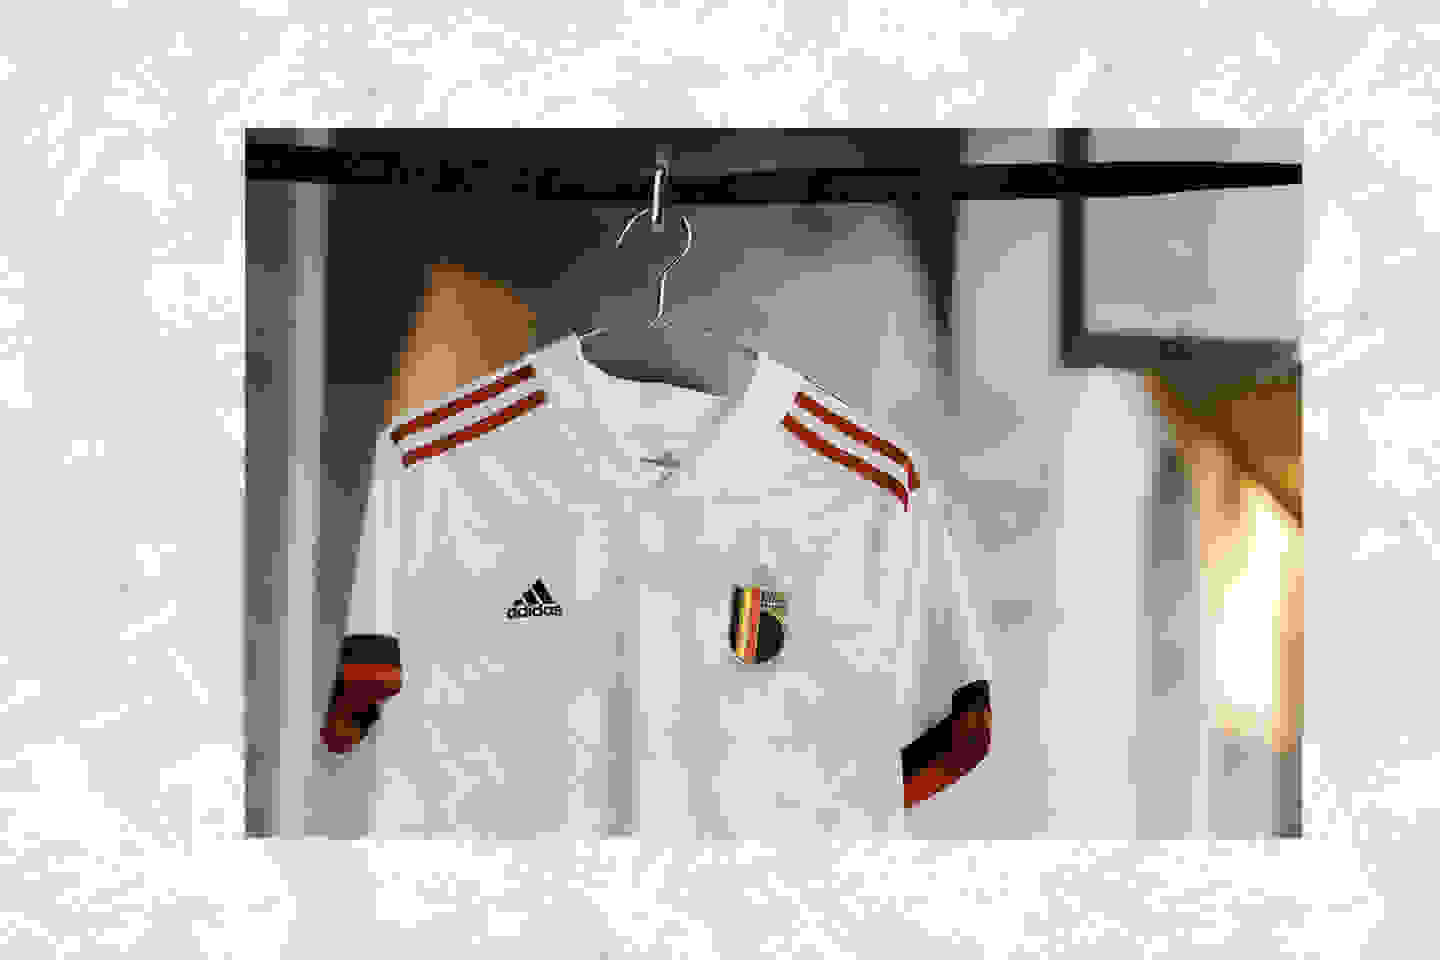 The new Belgium Away jersey is shown here. A modern masterpiece made for UEFA EURO 2020™, this adidas football jersey has an off-white design with red and black details.